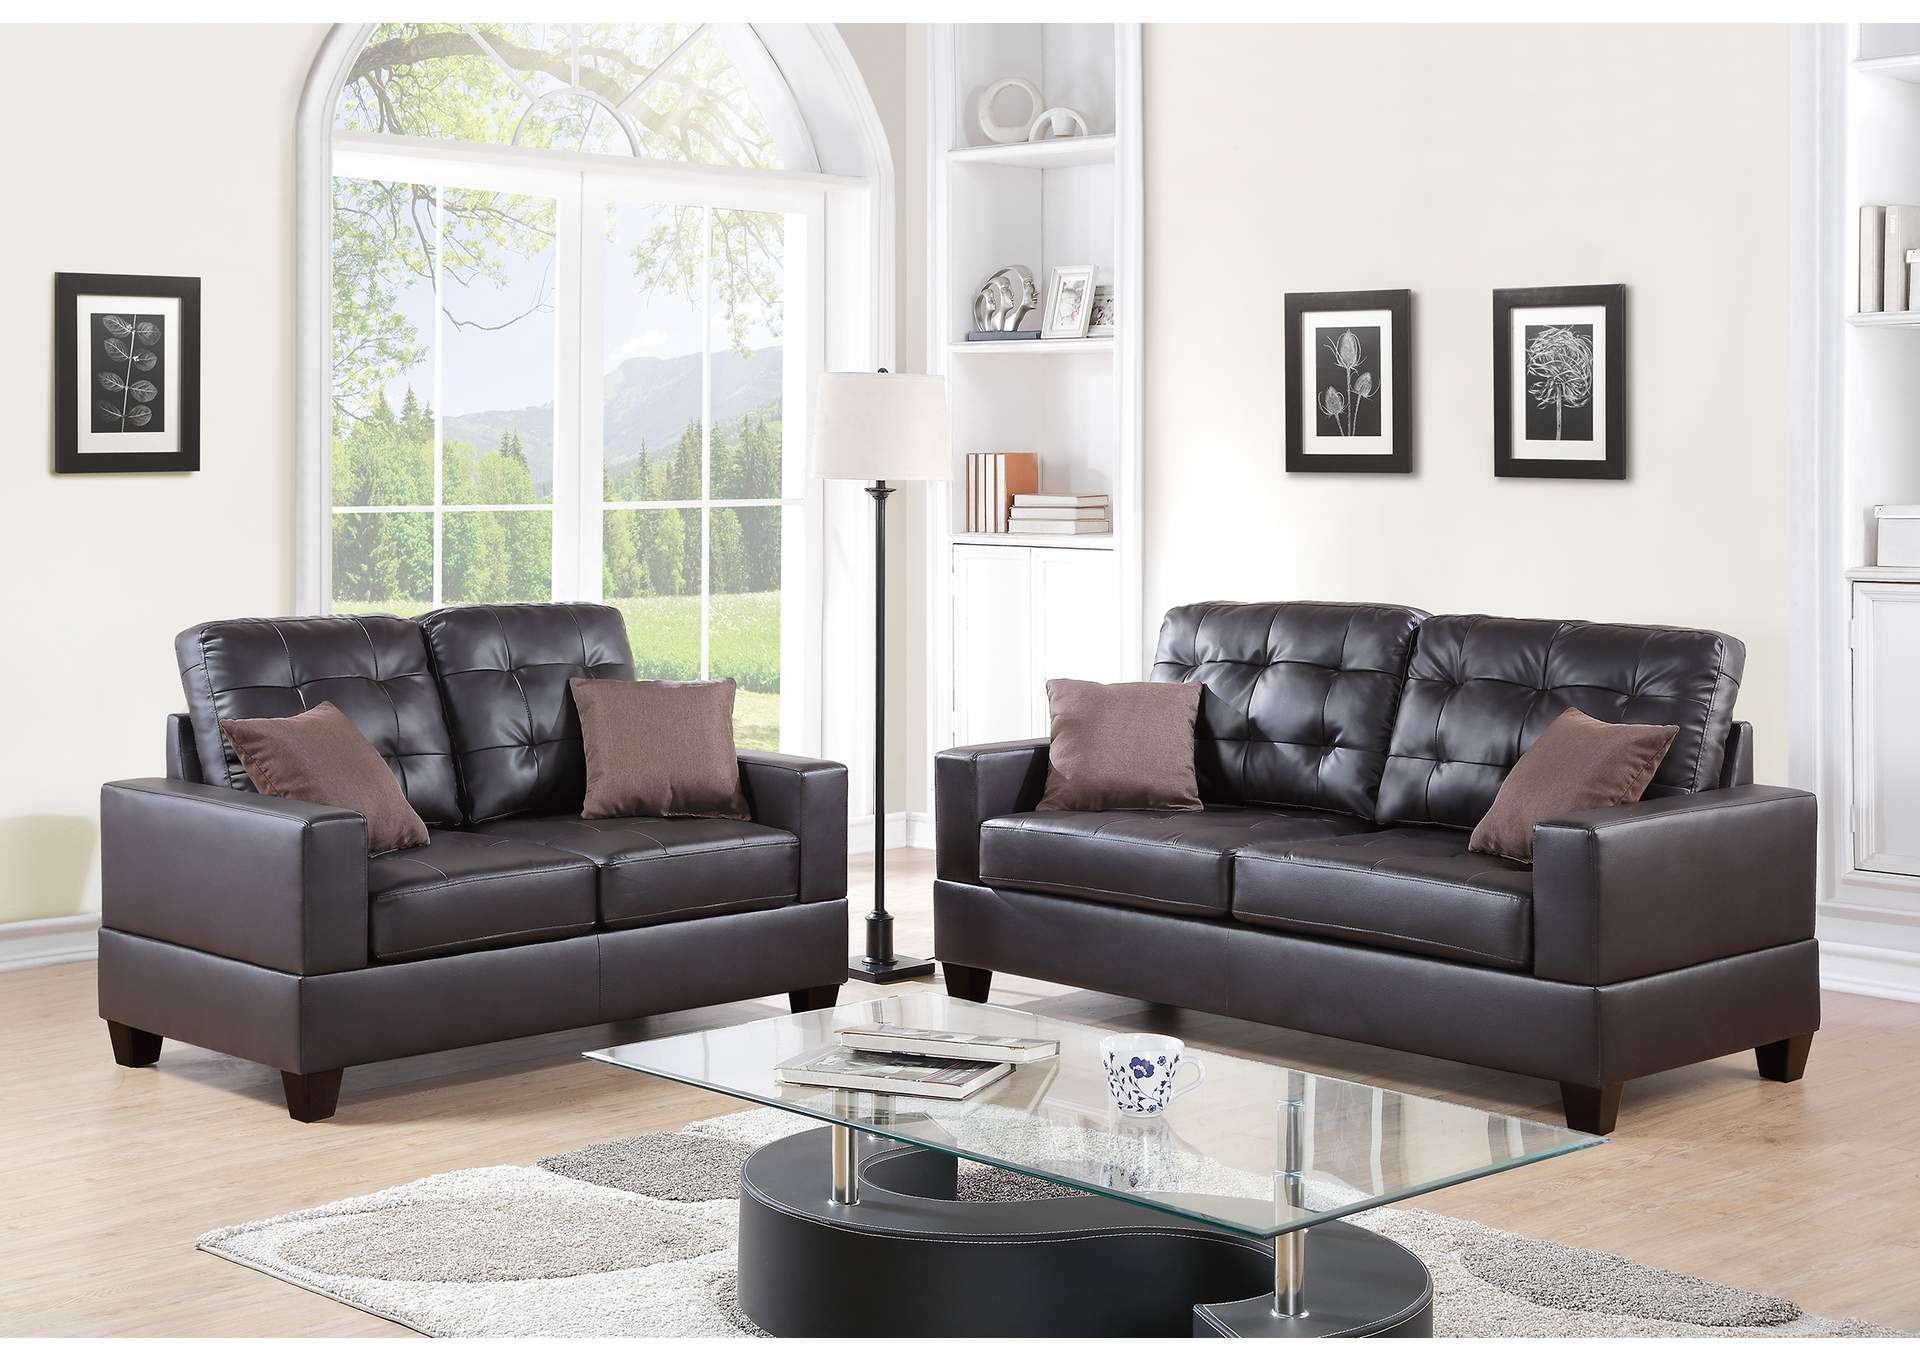 Espresso 2 Piece Sofa Set,Poundex